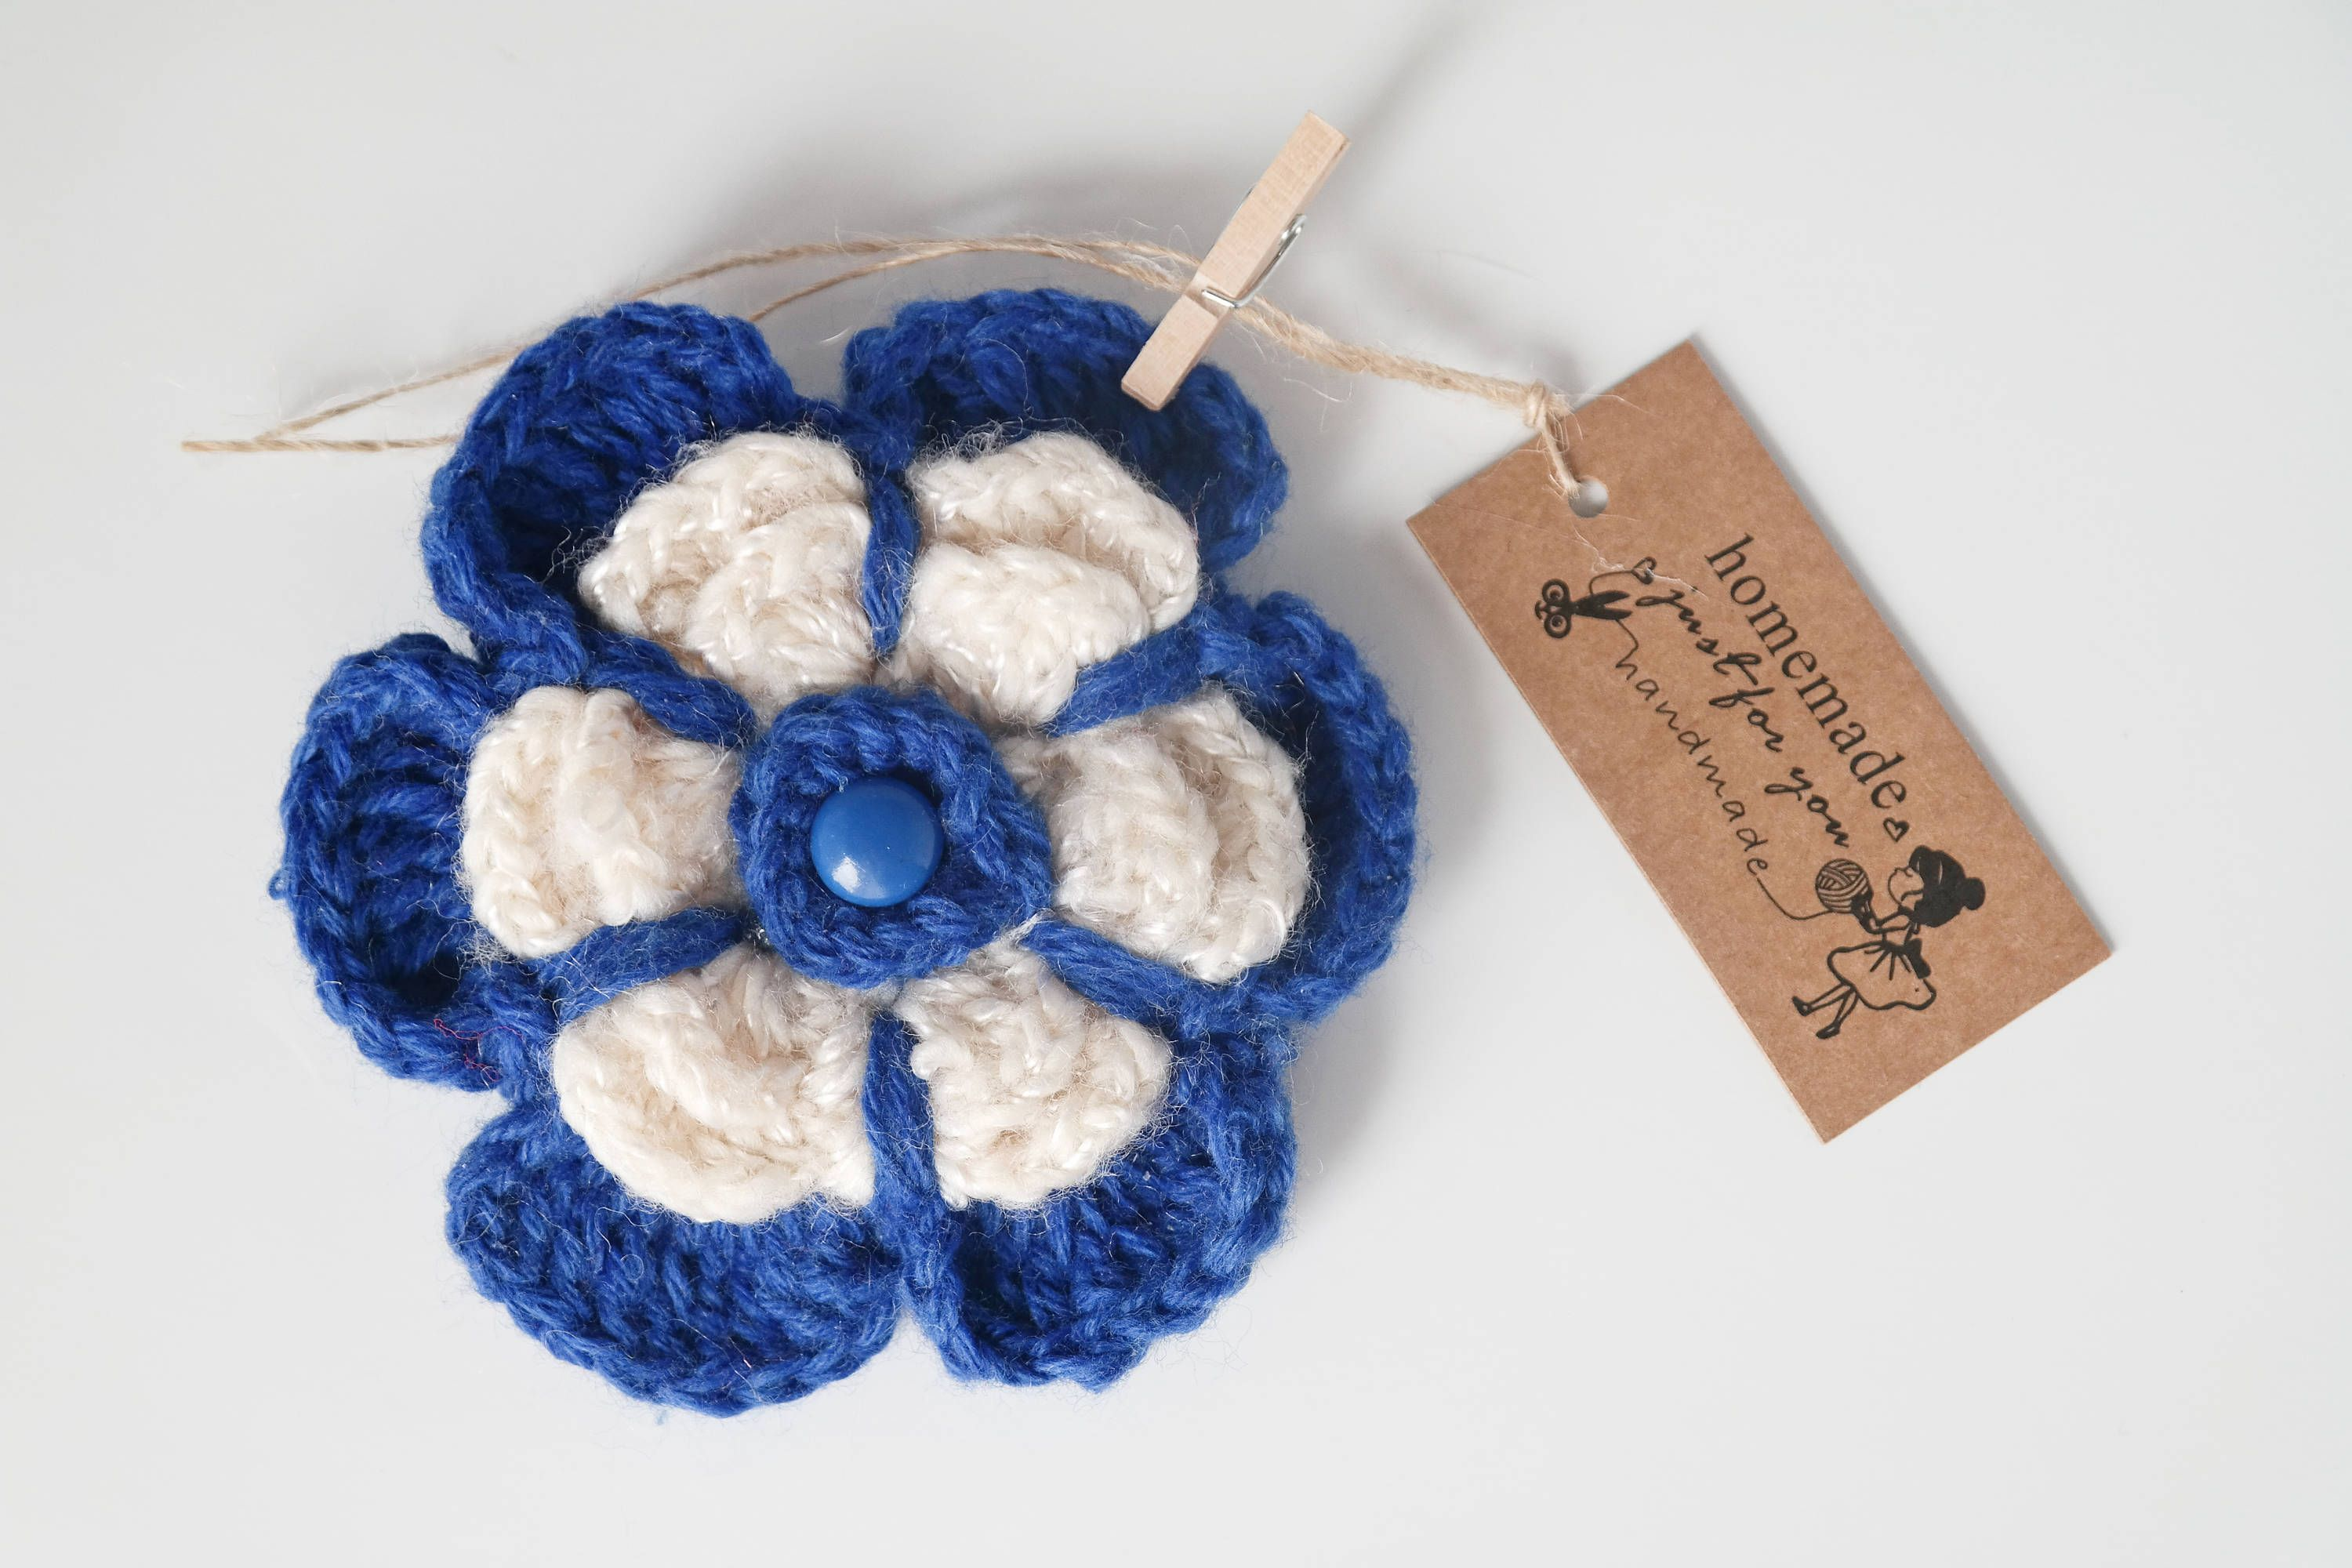 crochet tutorial embellishments pin brooch crocheted pinterest flower flowers